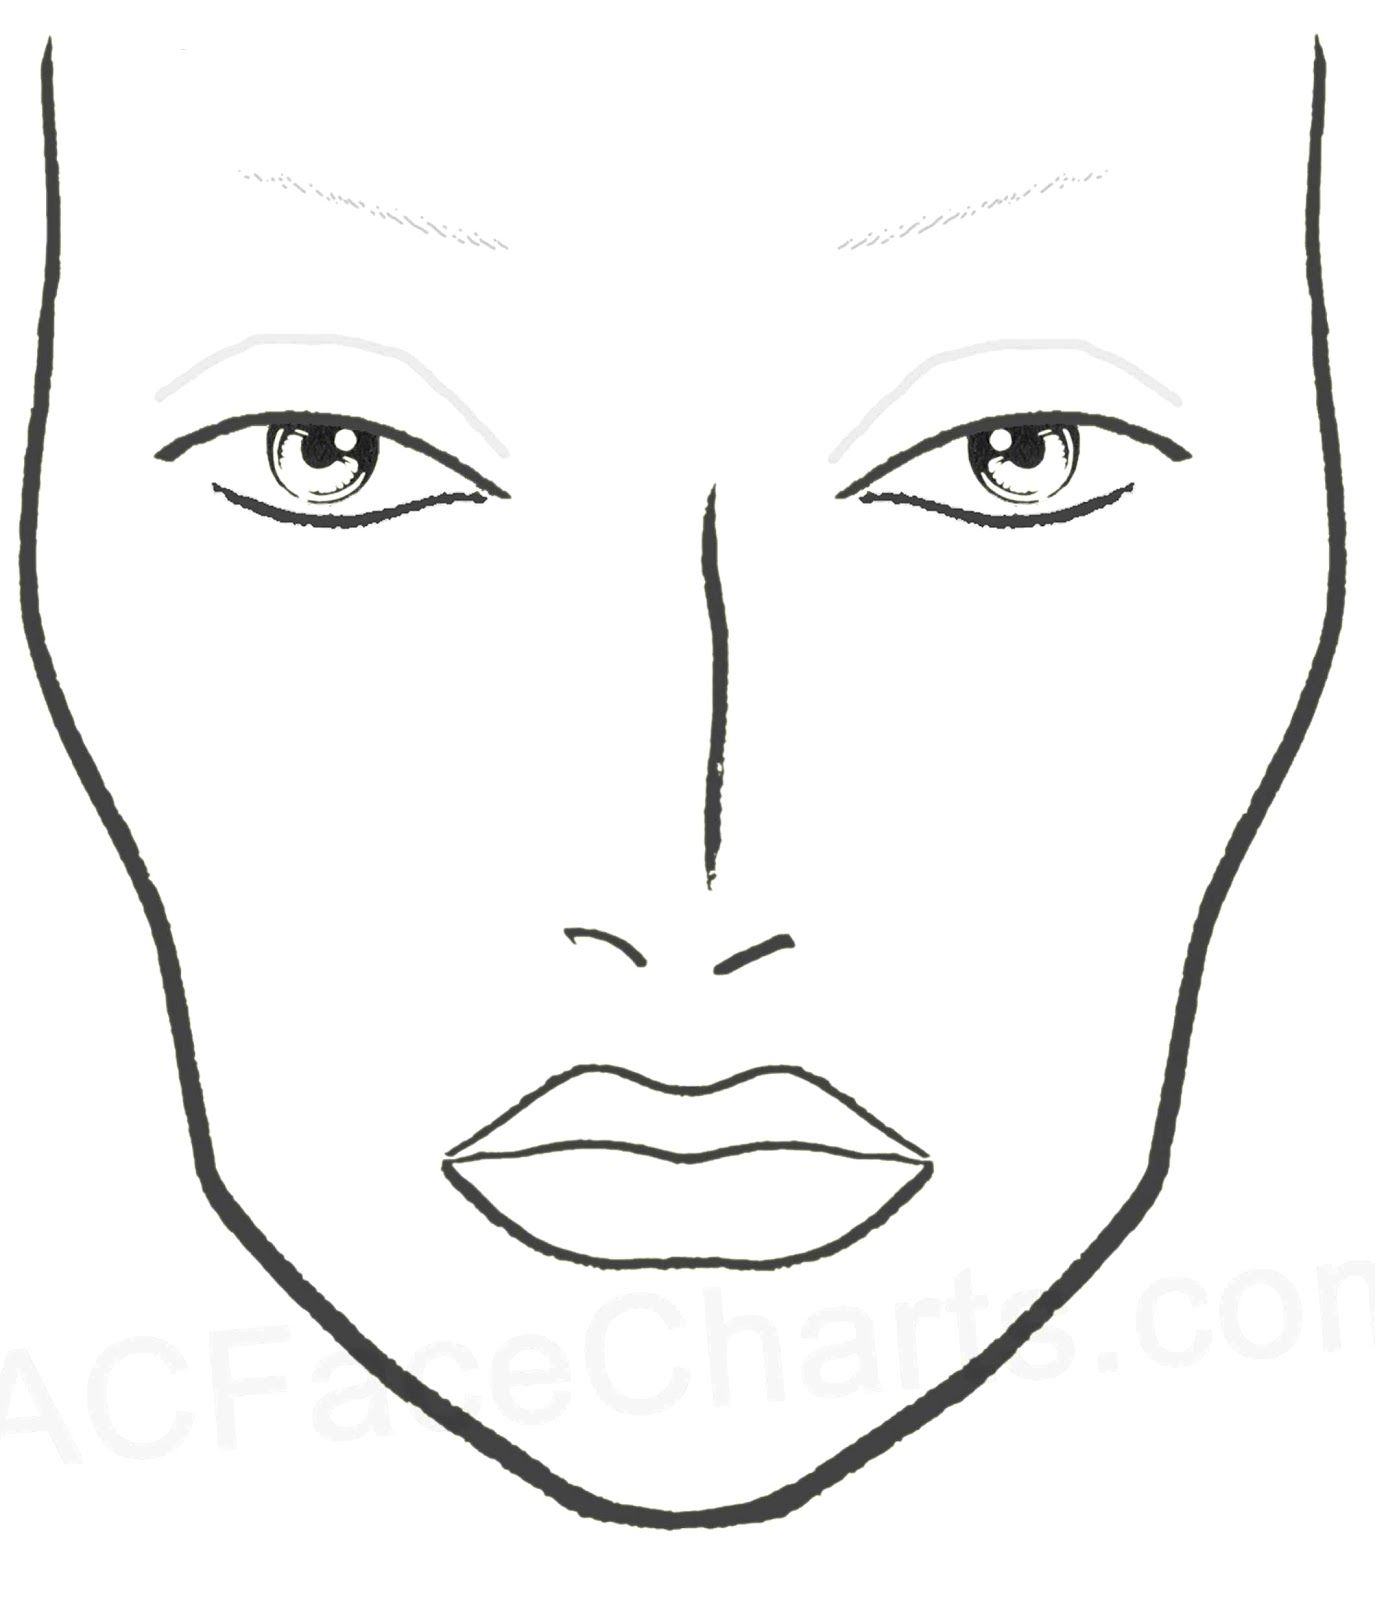 Blank mac face charts printable makeup pinterest and chart also rh